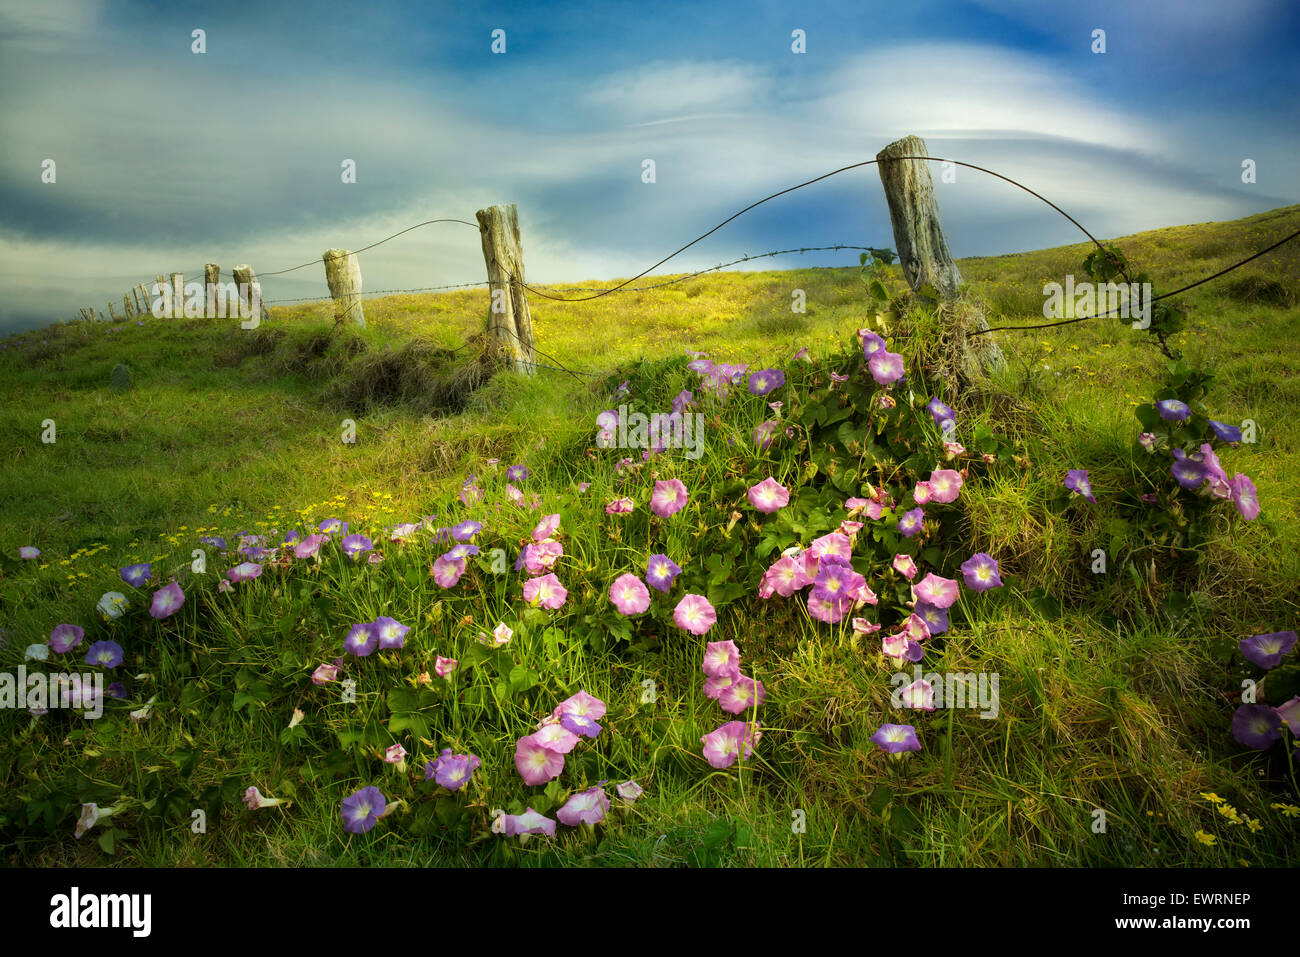 Fence line and Morning Glory flowers. Hawaii, The Big island. - Stock Image